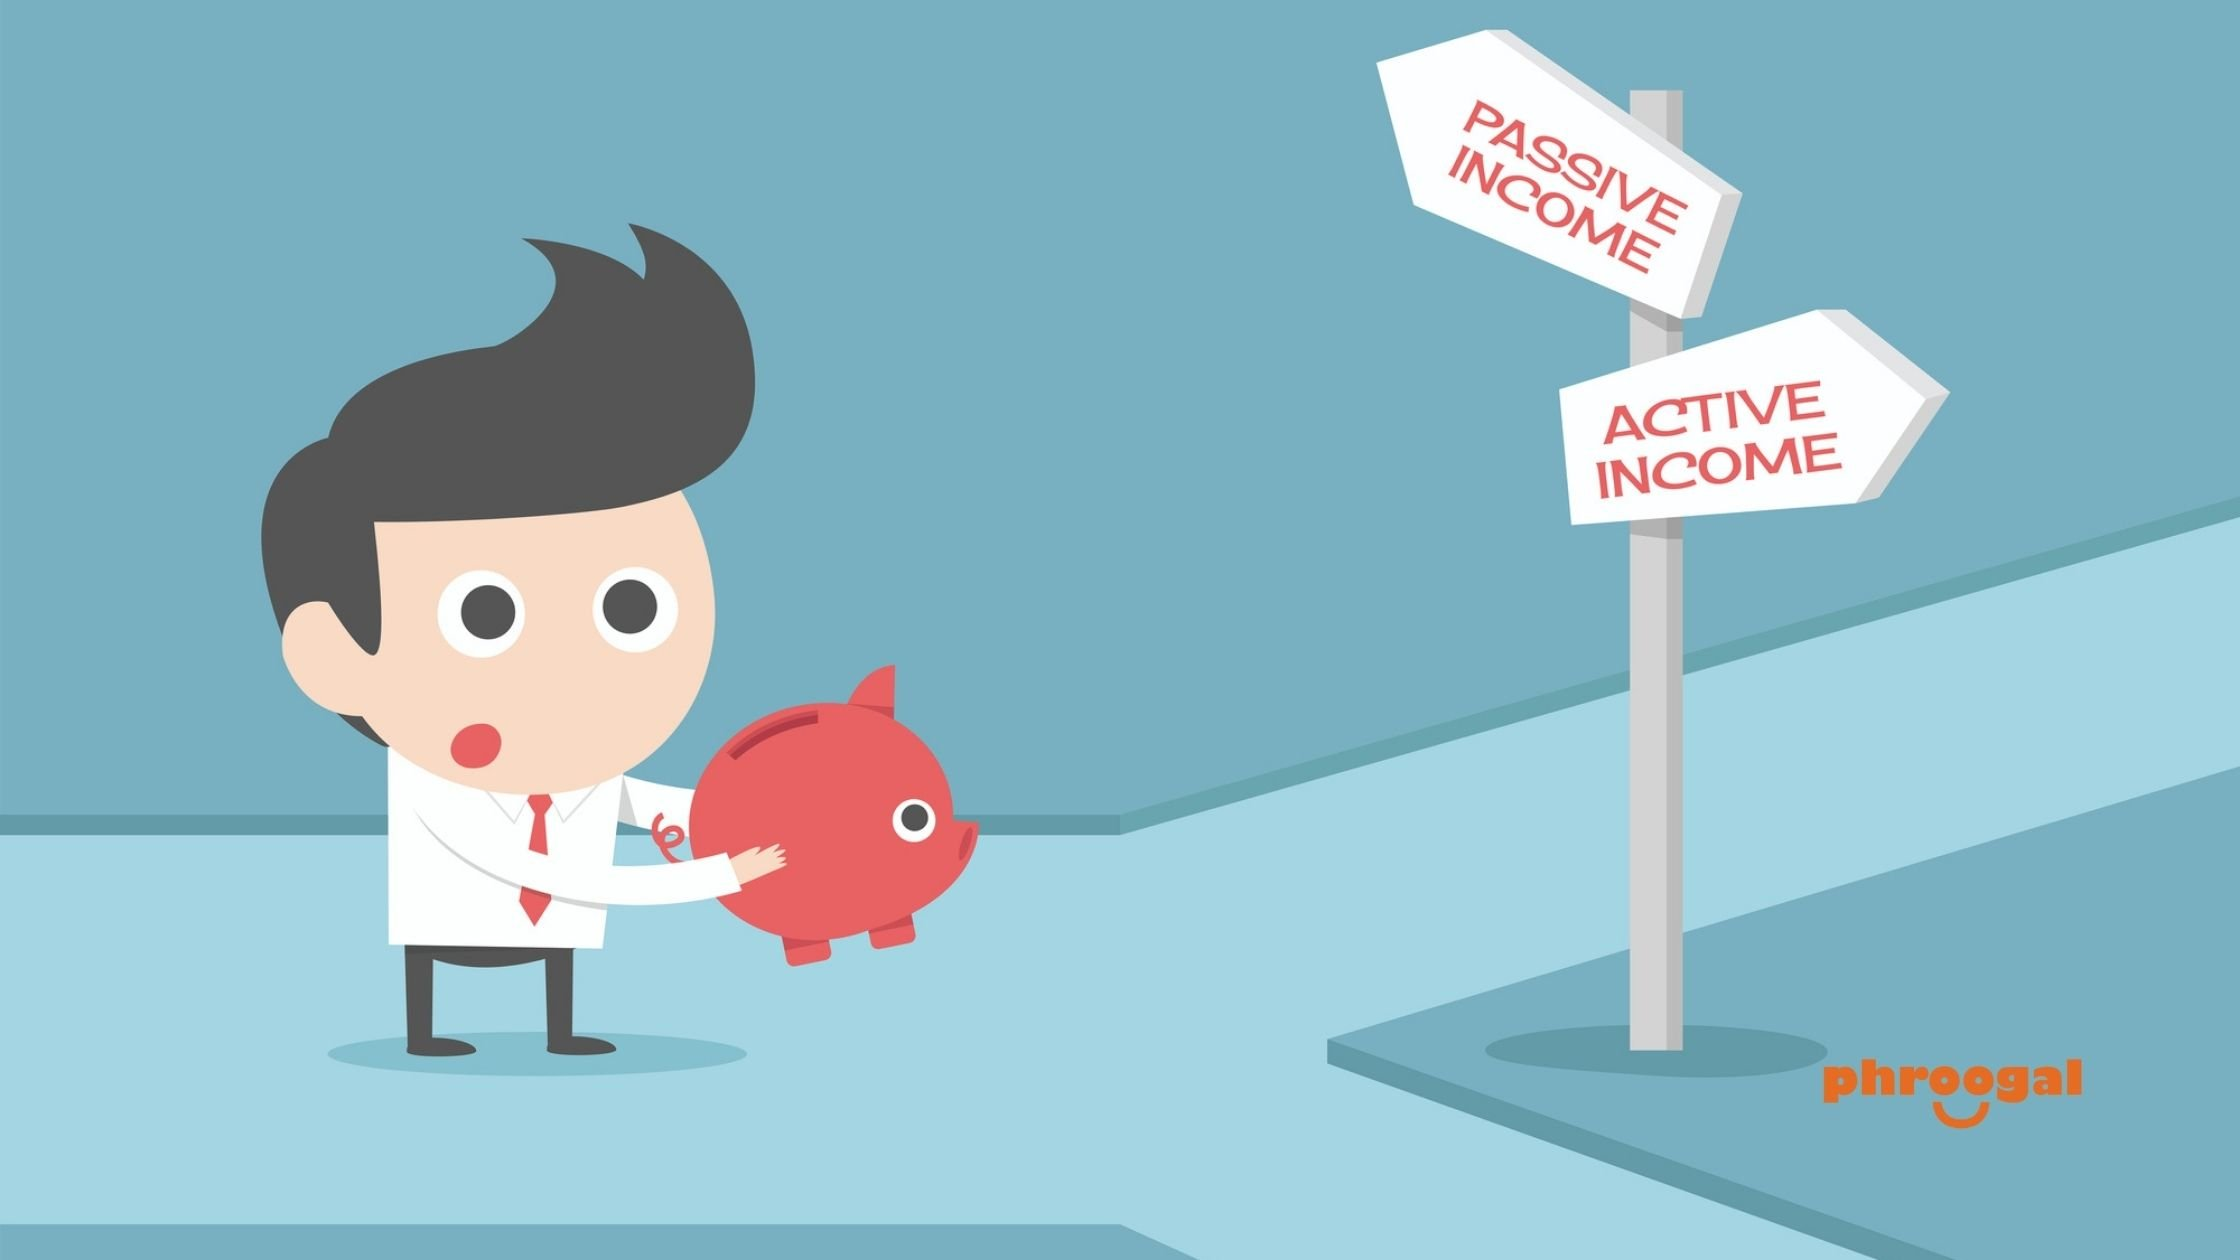 Difference Between Active Income and Passive Income